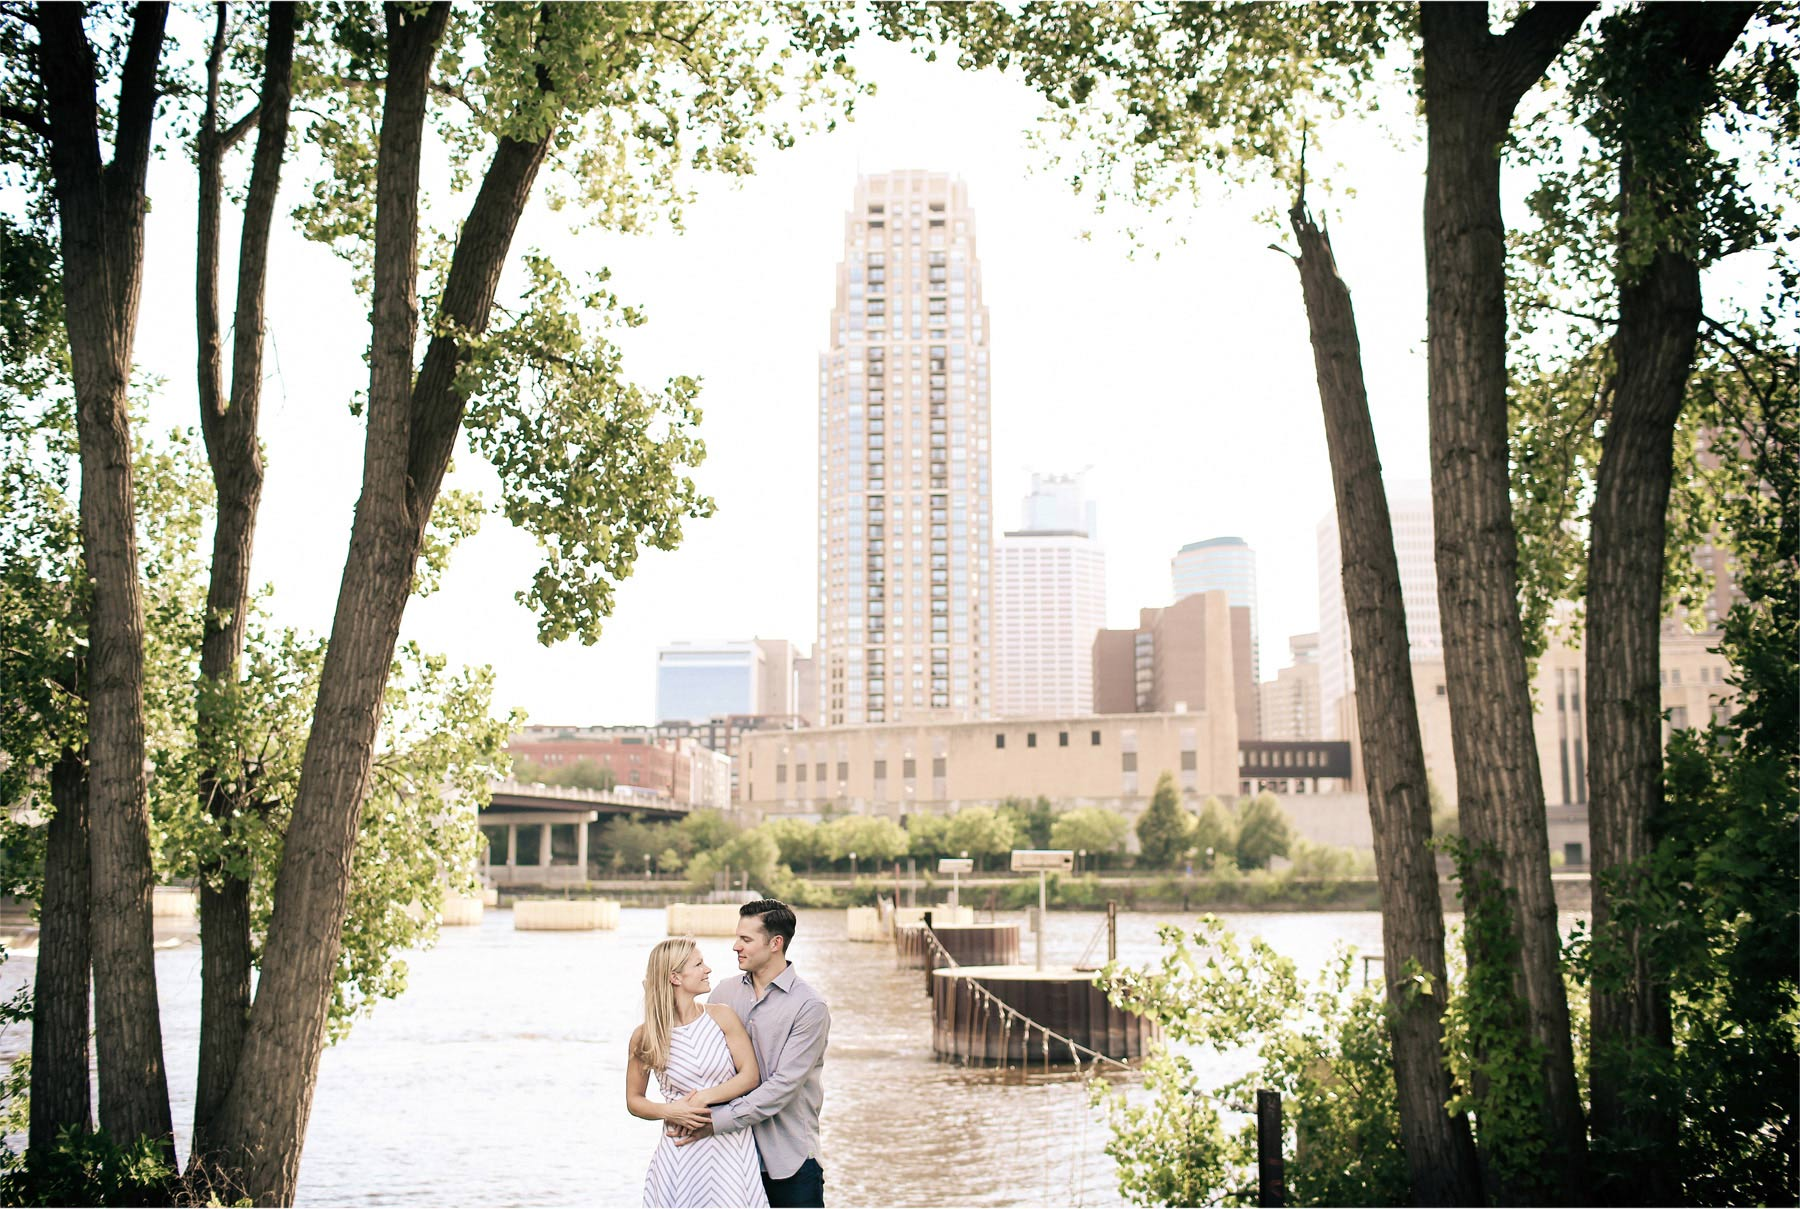 04-Minneapolis-Minnesota-Engagement-Photographer-by-Andrew-Vick-Photography-Summer-Mississippi-River-Embrace-Vintage-Tina-and-Kevin.jpg